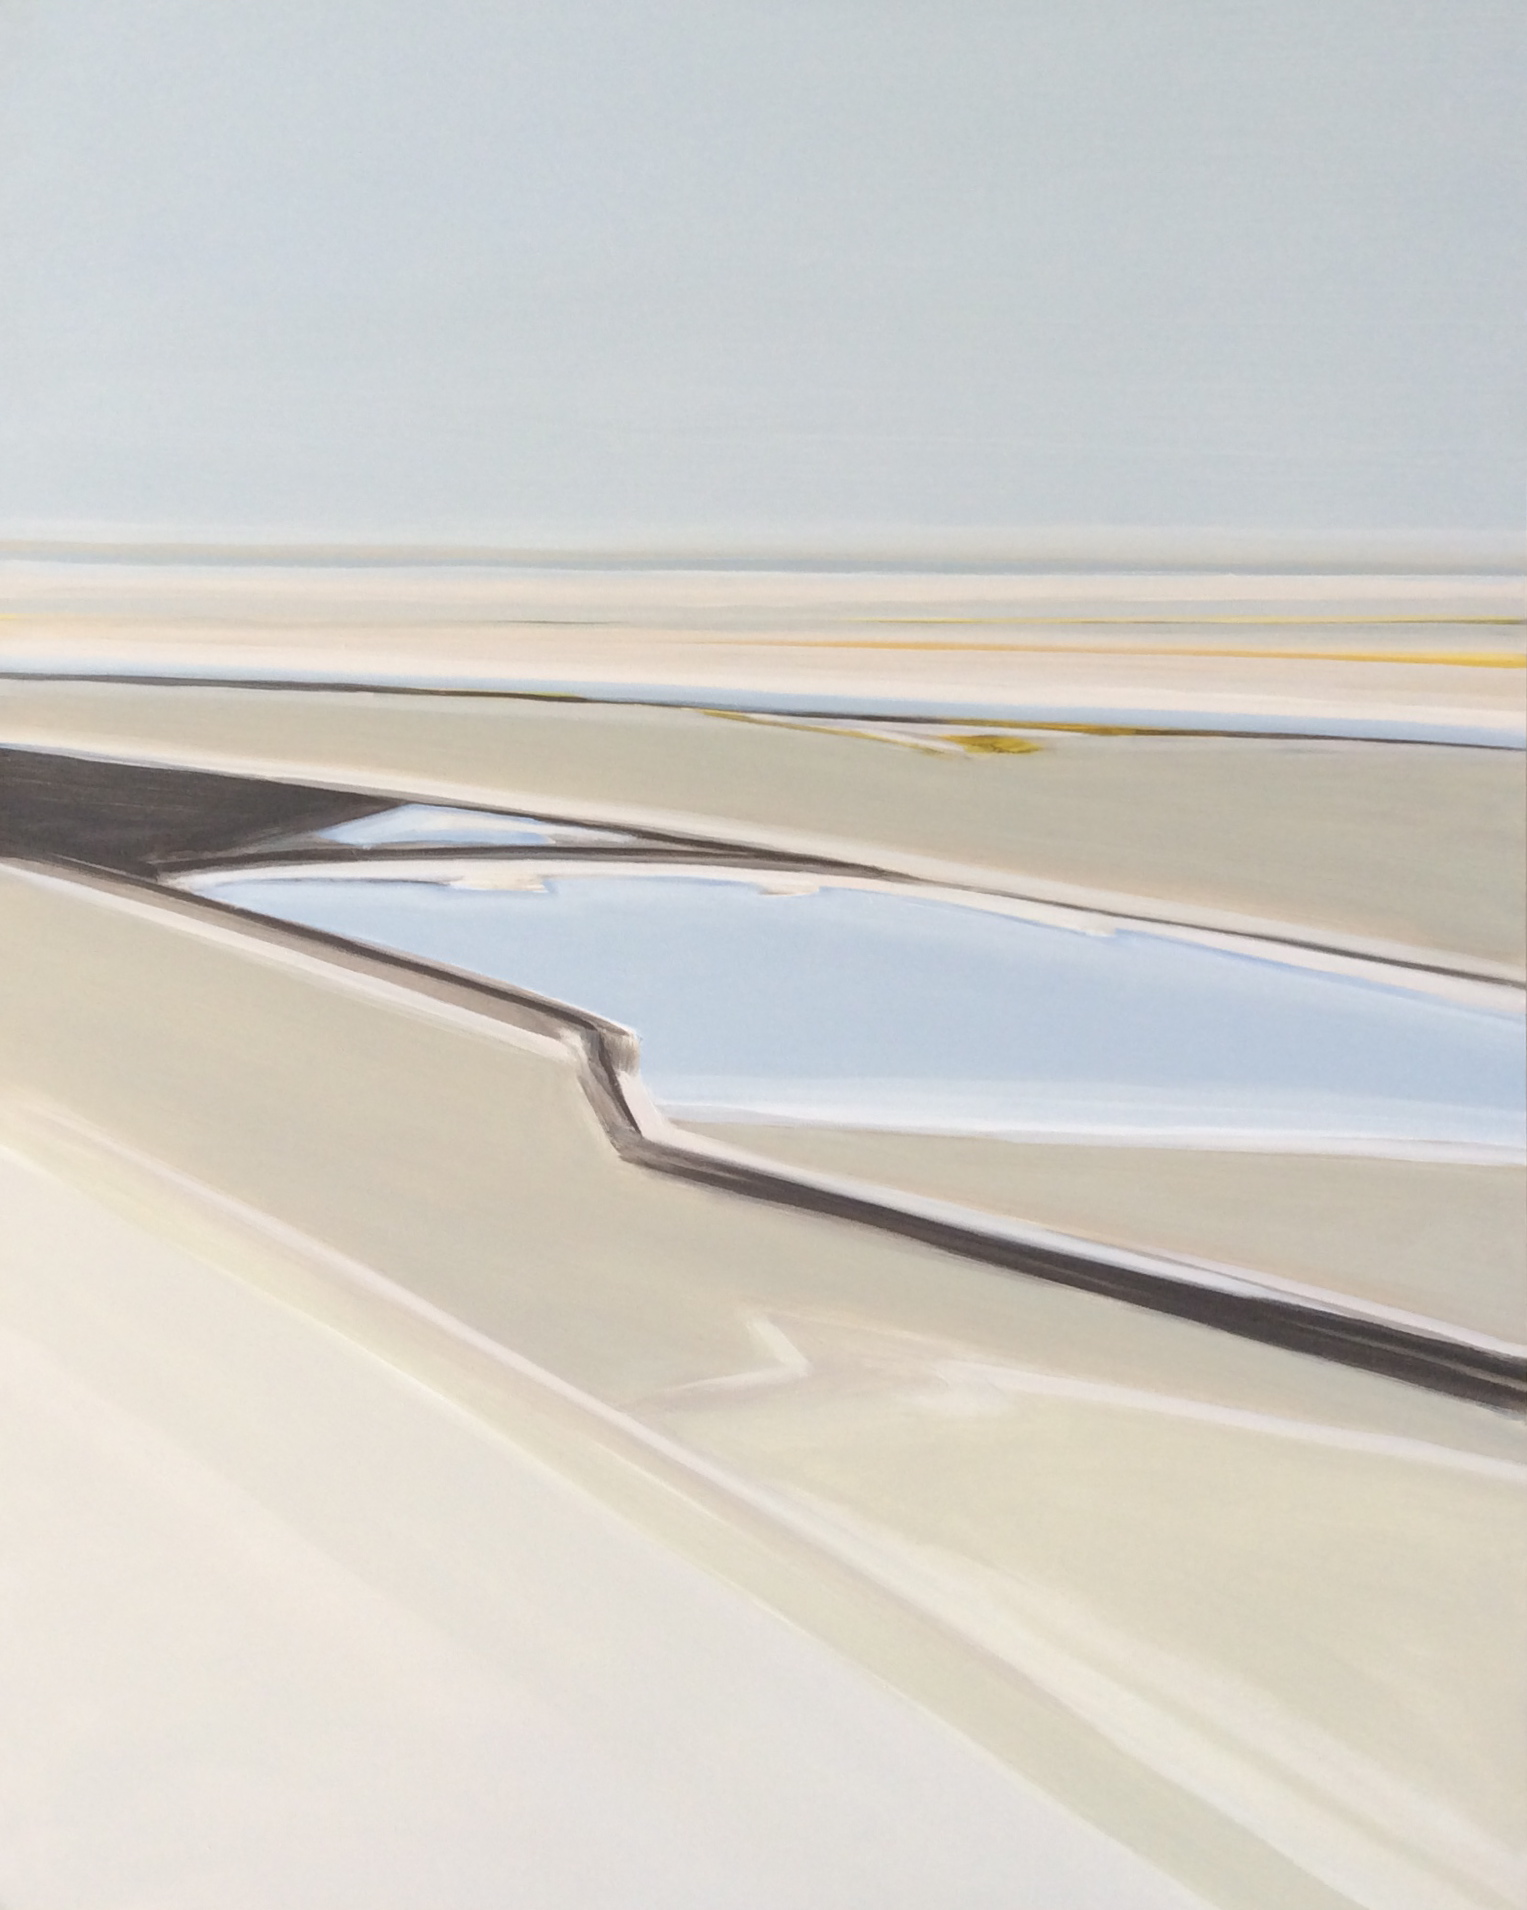 Dry Lakebed 1